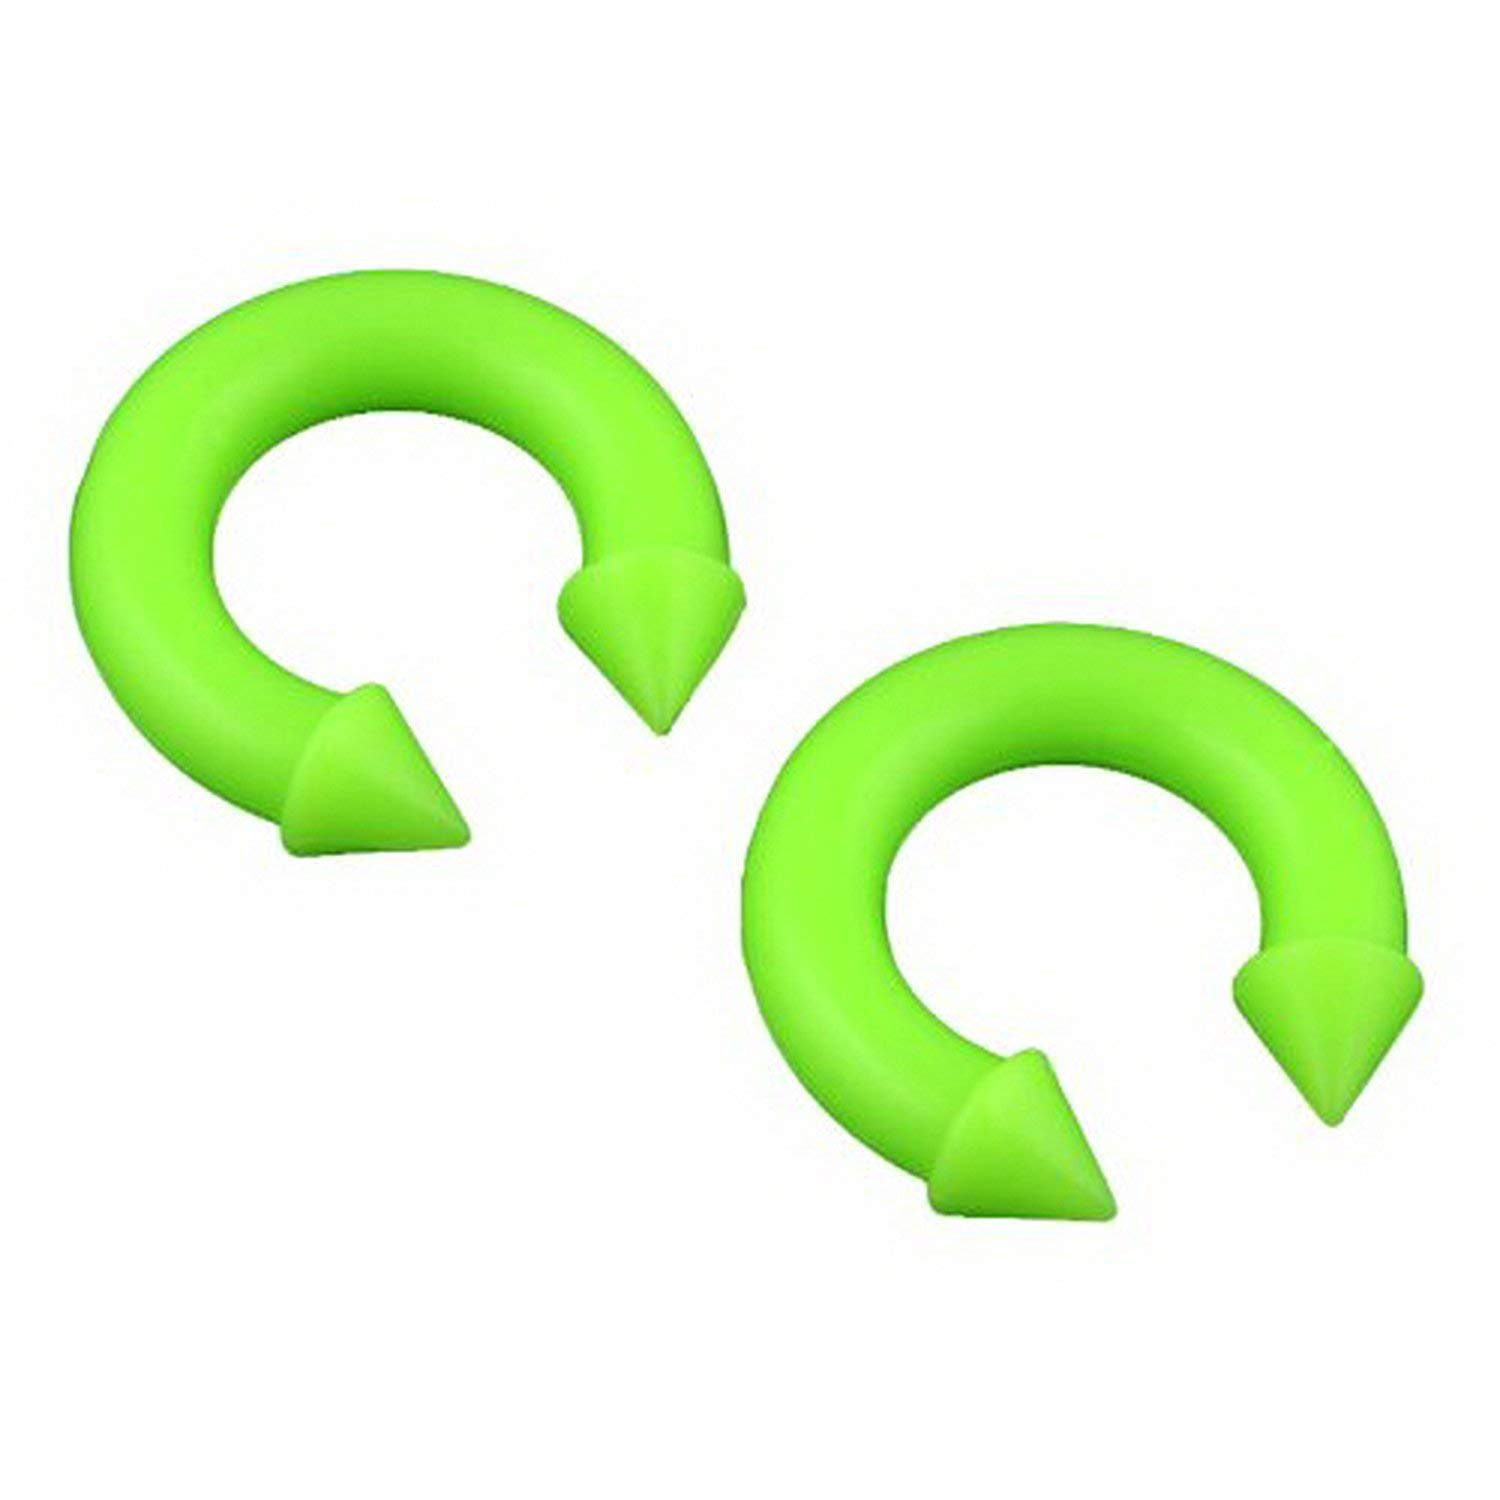 JewelryVolt Pair Silicone Horseshoe Spike Ends Plugs Gauge Flexible Rubber Plastic (Green 10mm (000g))